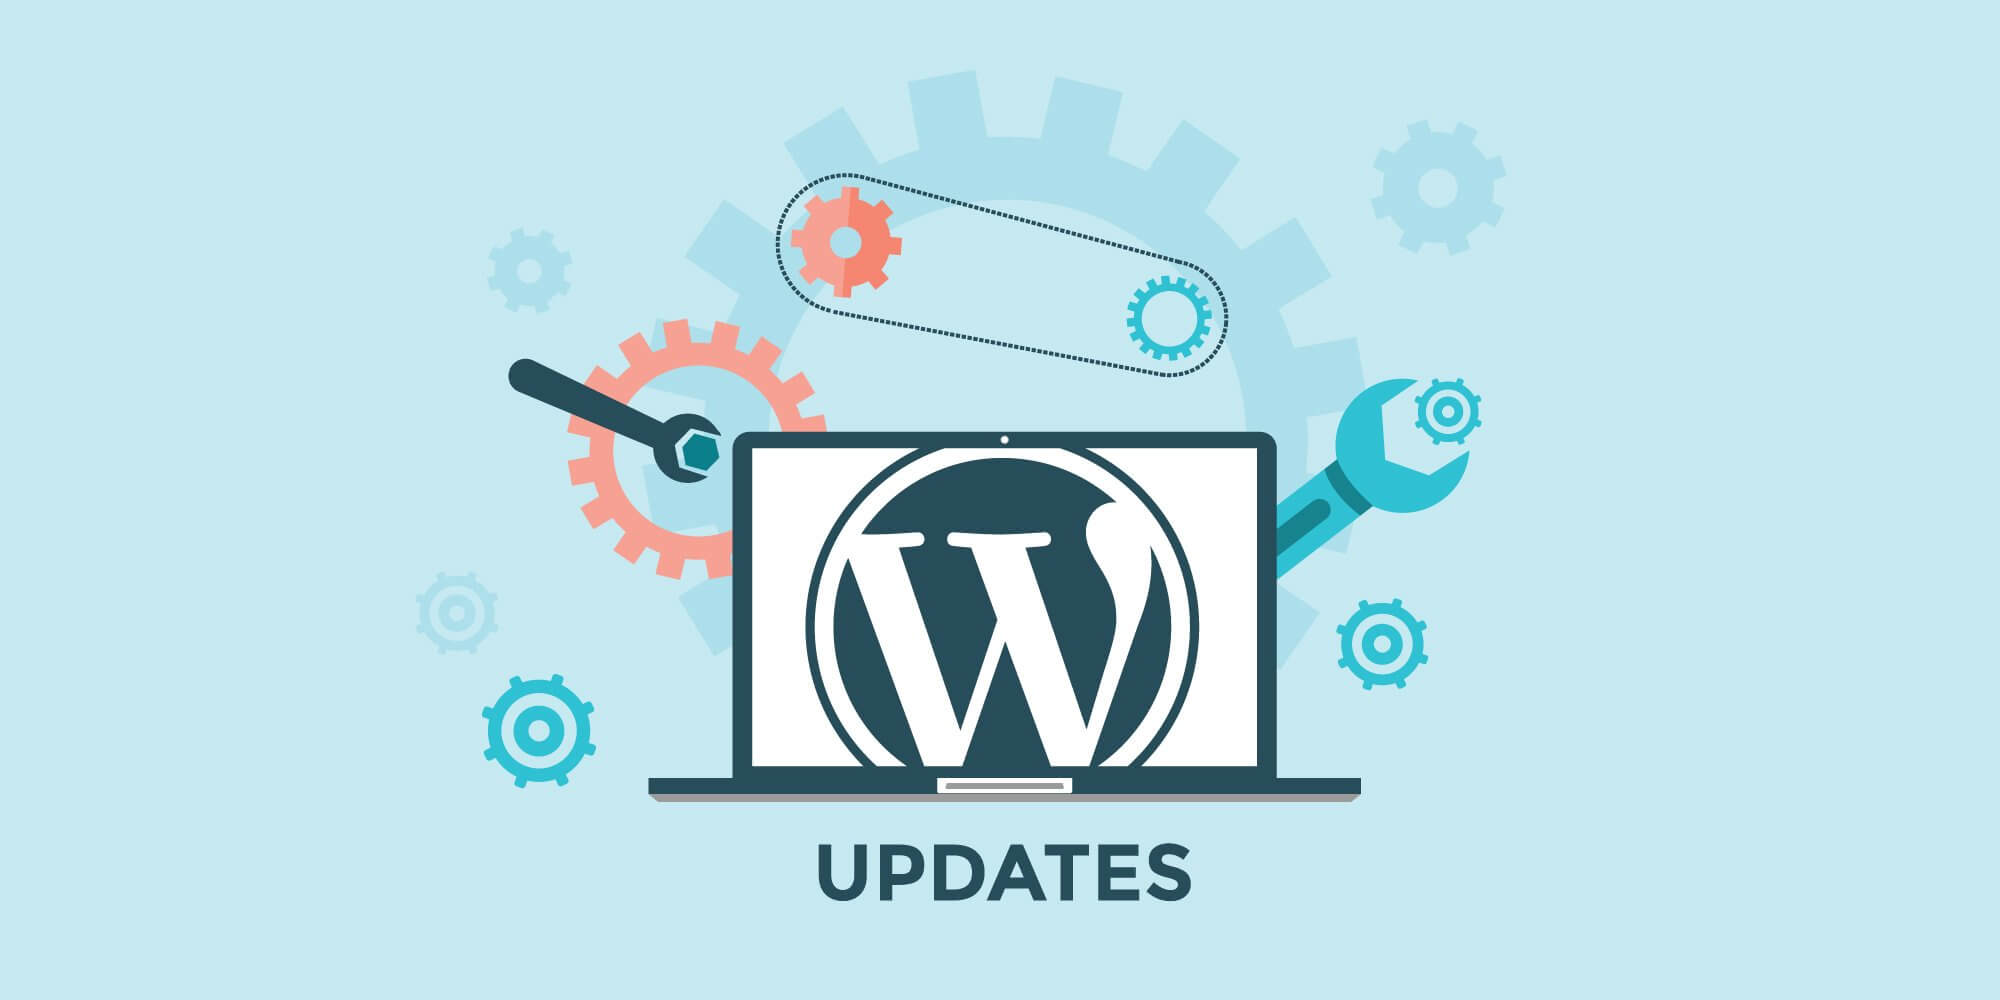 WordPress Updates graphic by London Creative Designs, digital agency London